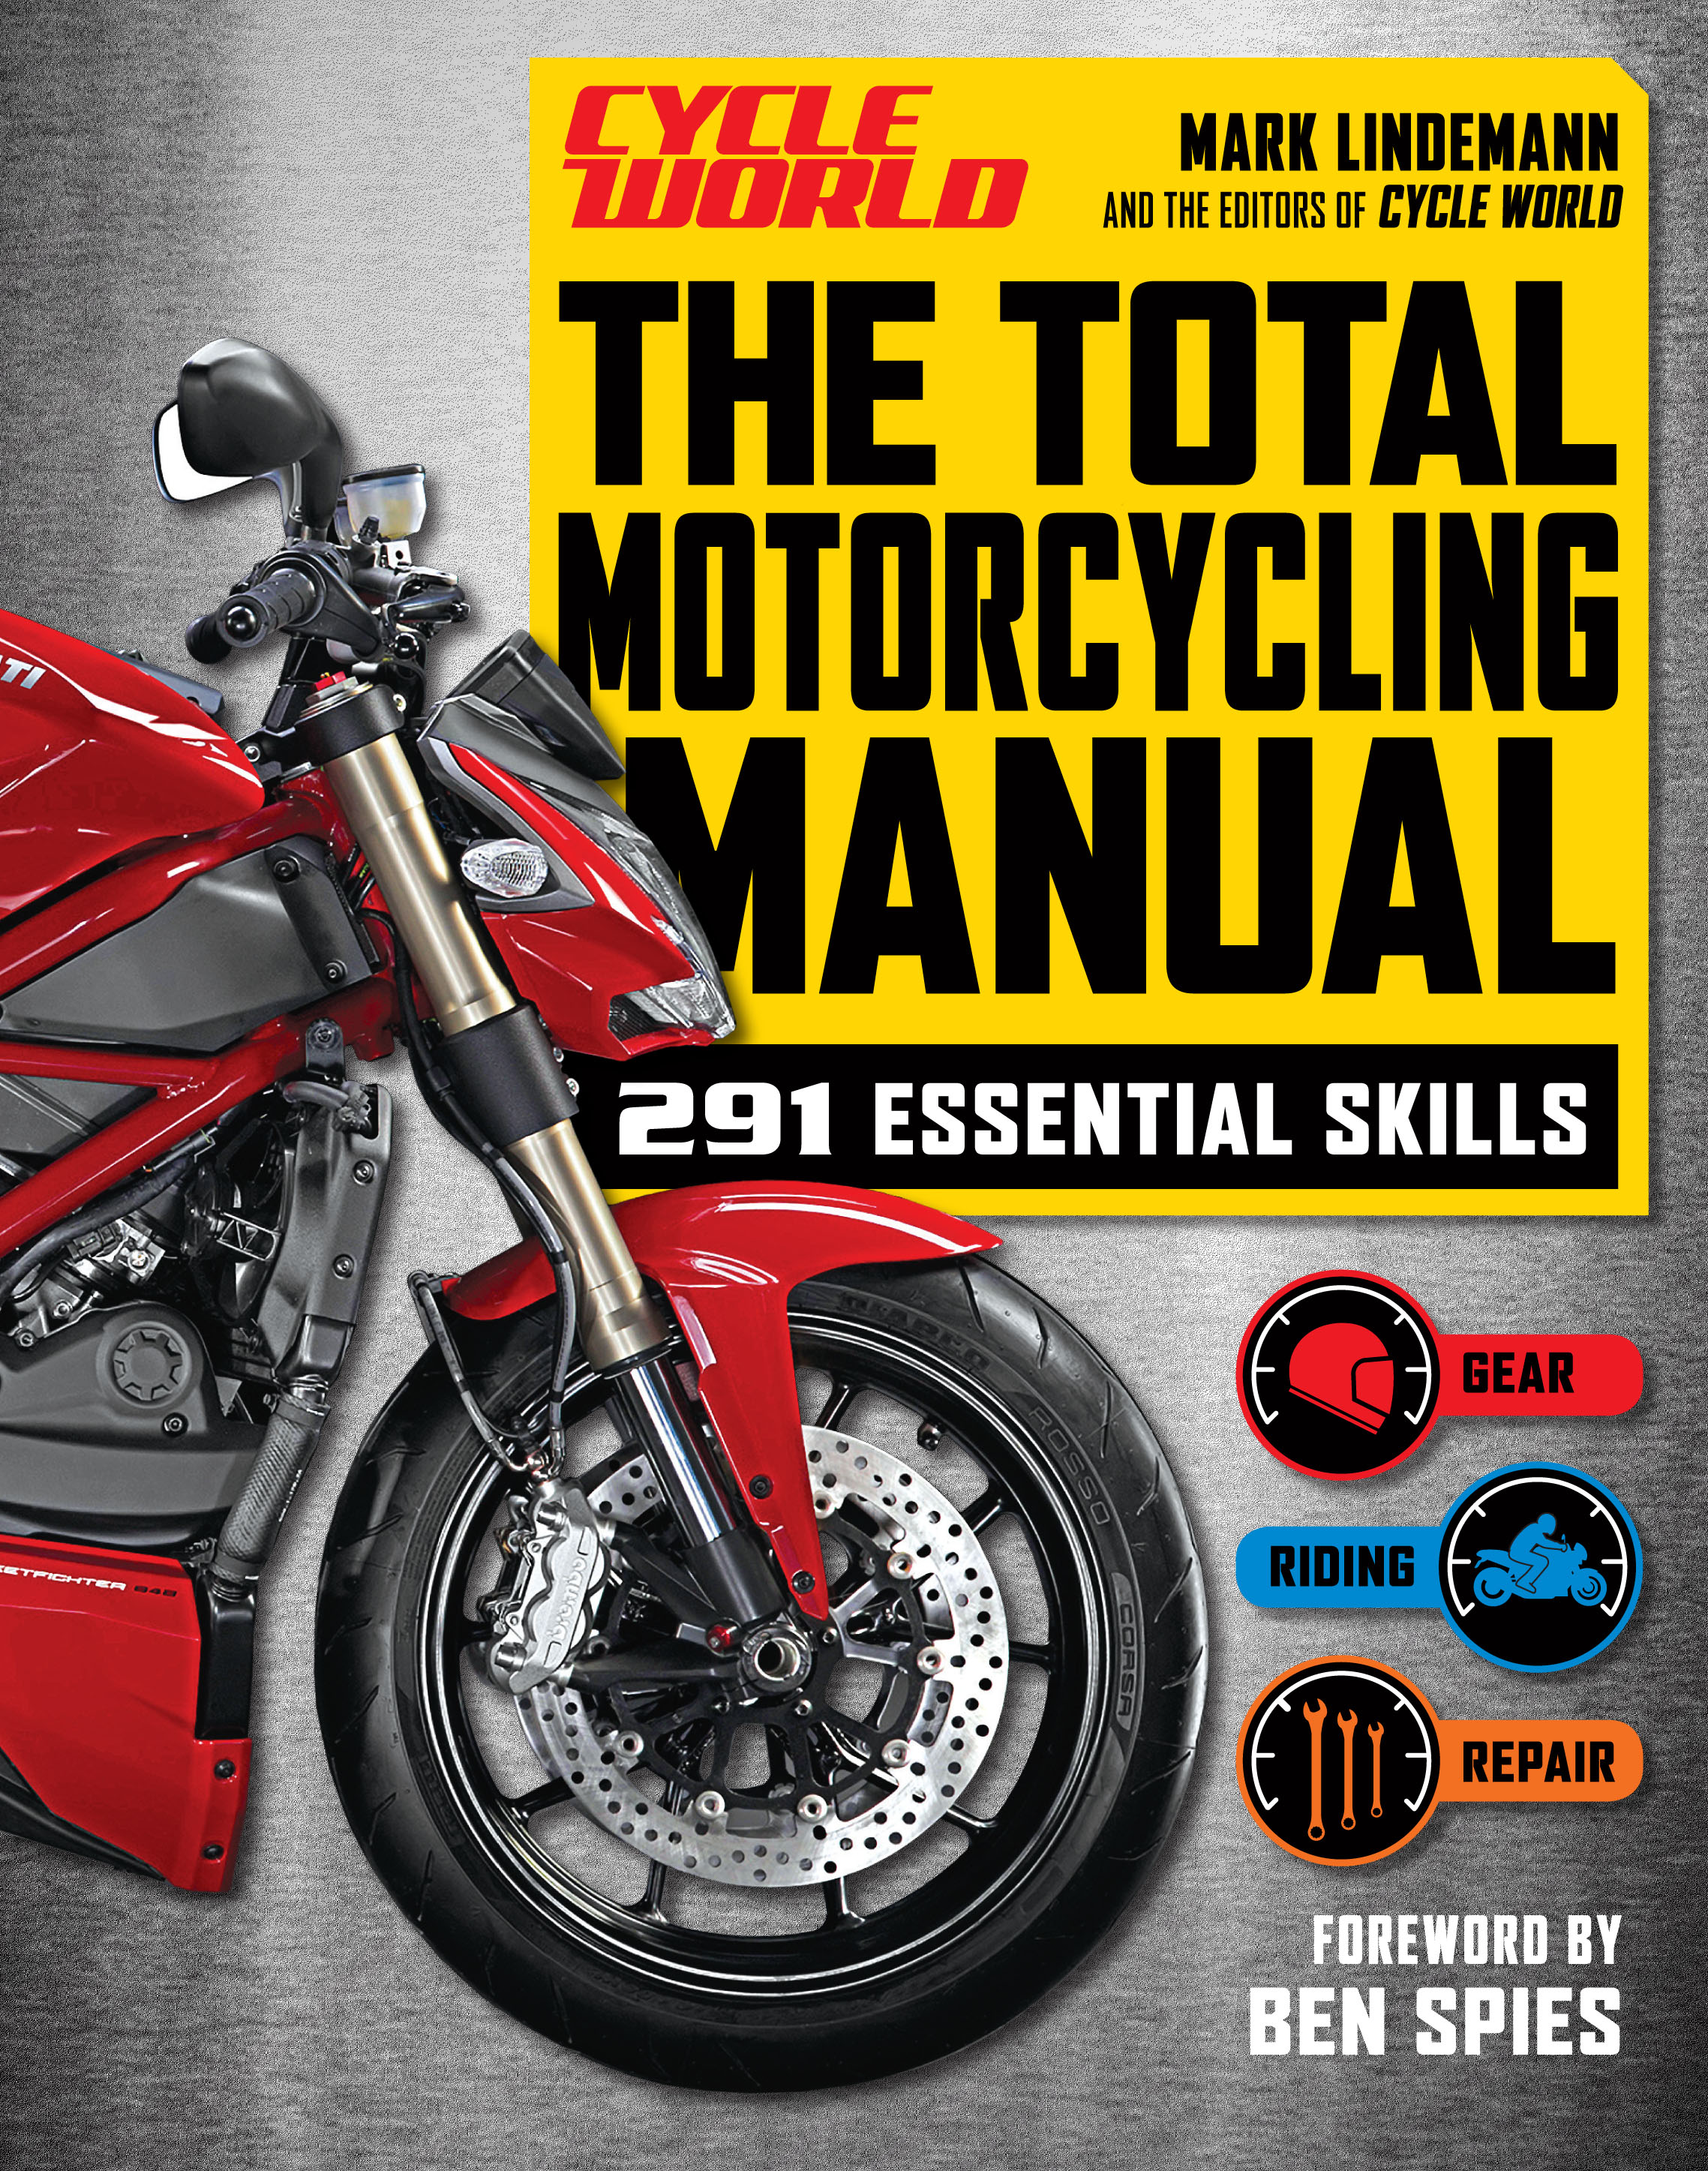 the total motorcycling manual cycle world book by mark lindemann rh simonandschuster com hero motorcycle repair guide honda motorcycle repair guide